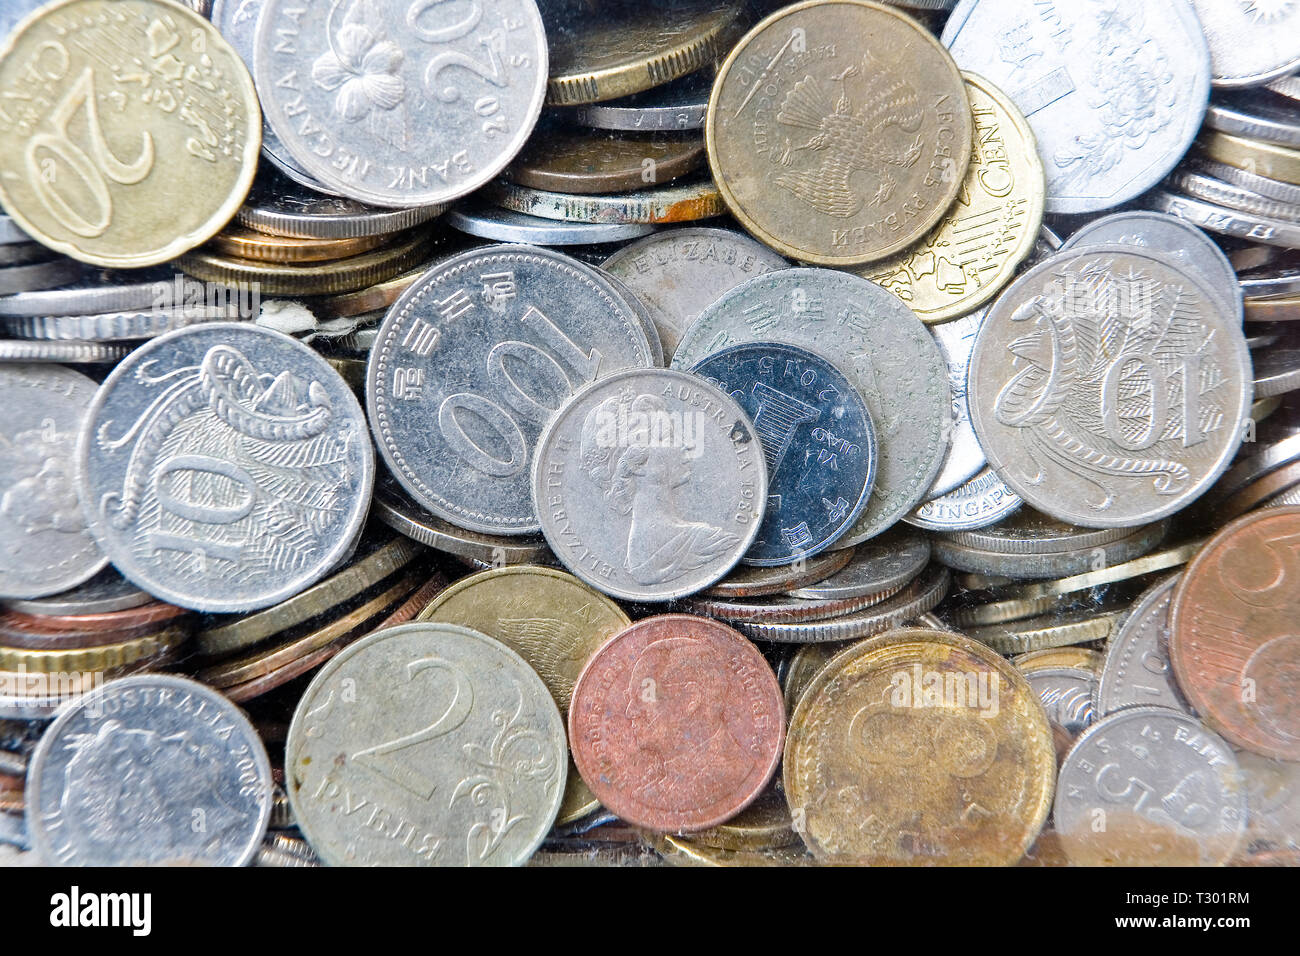 A lot of coins of various denominations and different countries. Donations in the Temple of the Big Buddha in Phuket. Thailand. Stock Photo